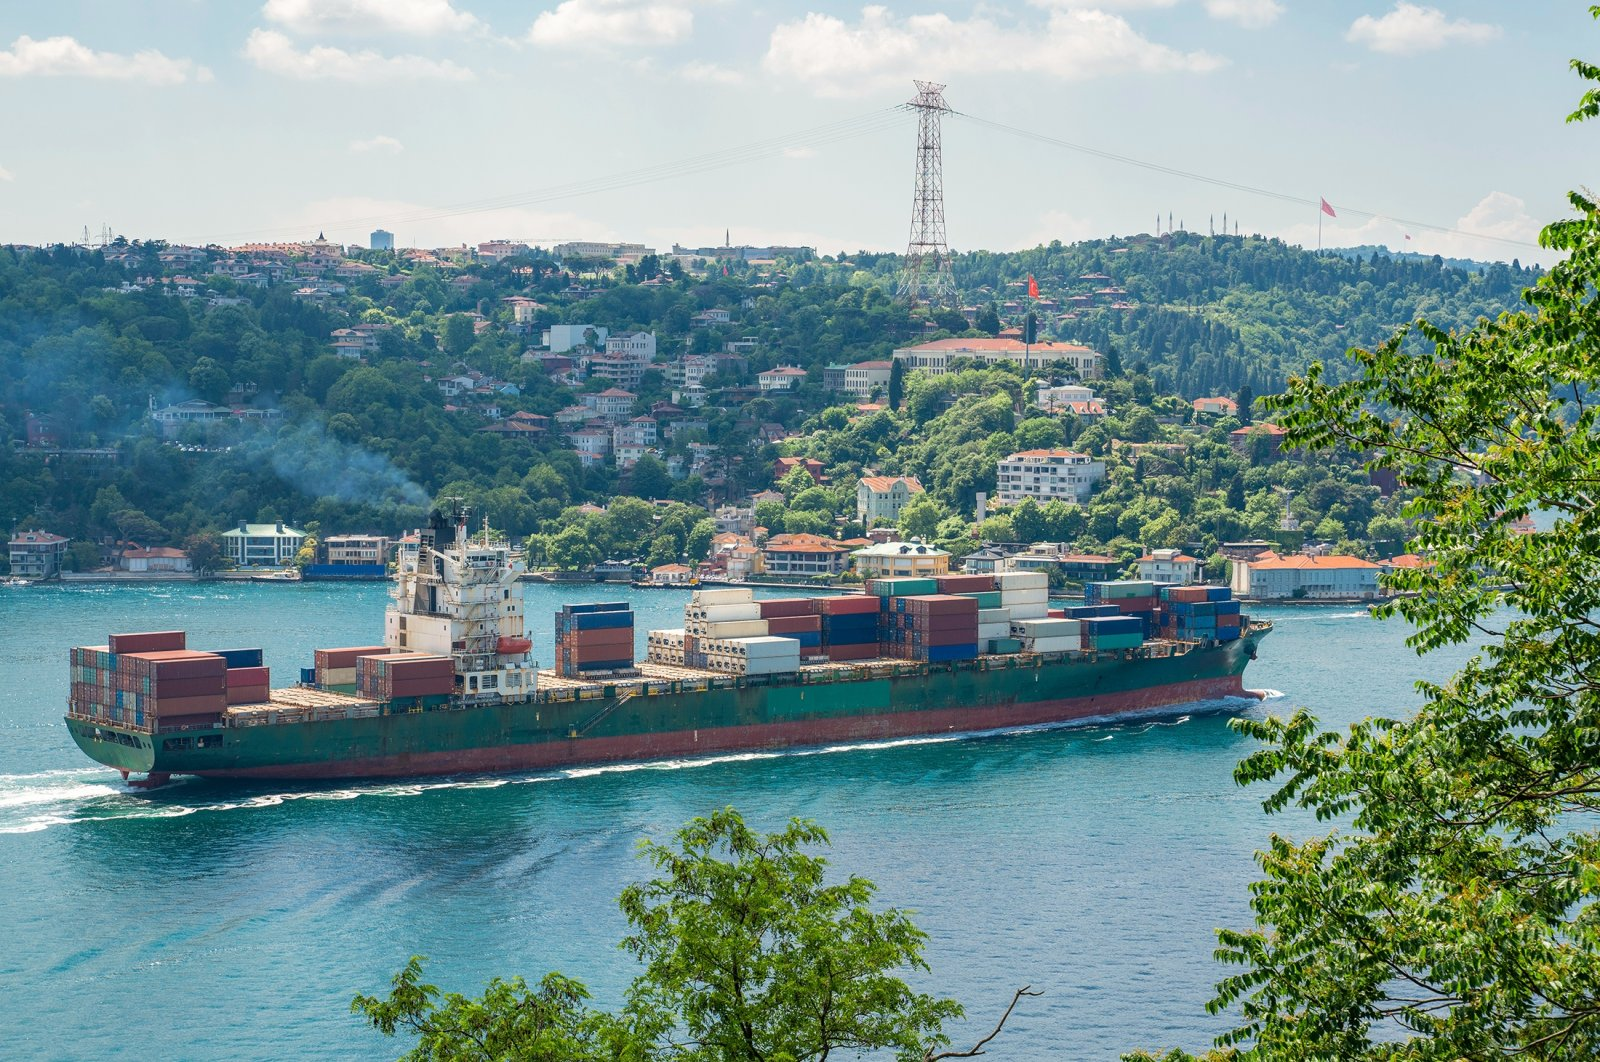 A container ship sails through the Bosporus in Istanbul, Turkey, June 23, 2021. (Shutterstock Photo)